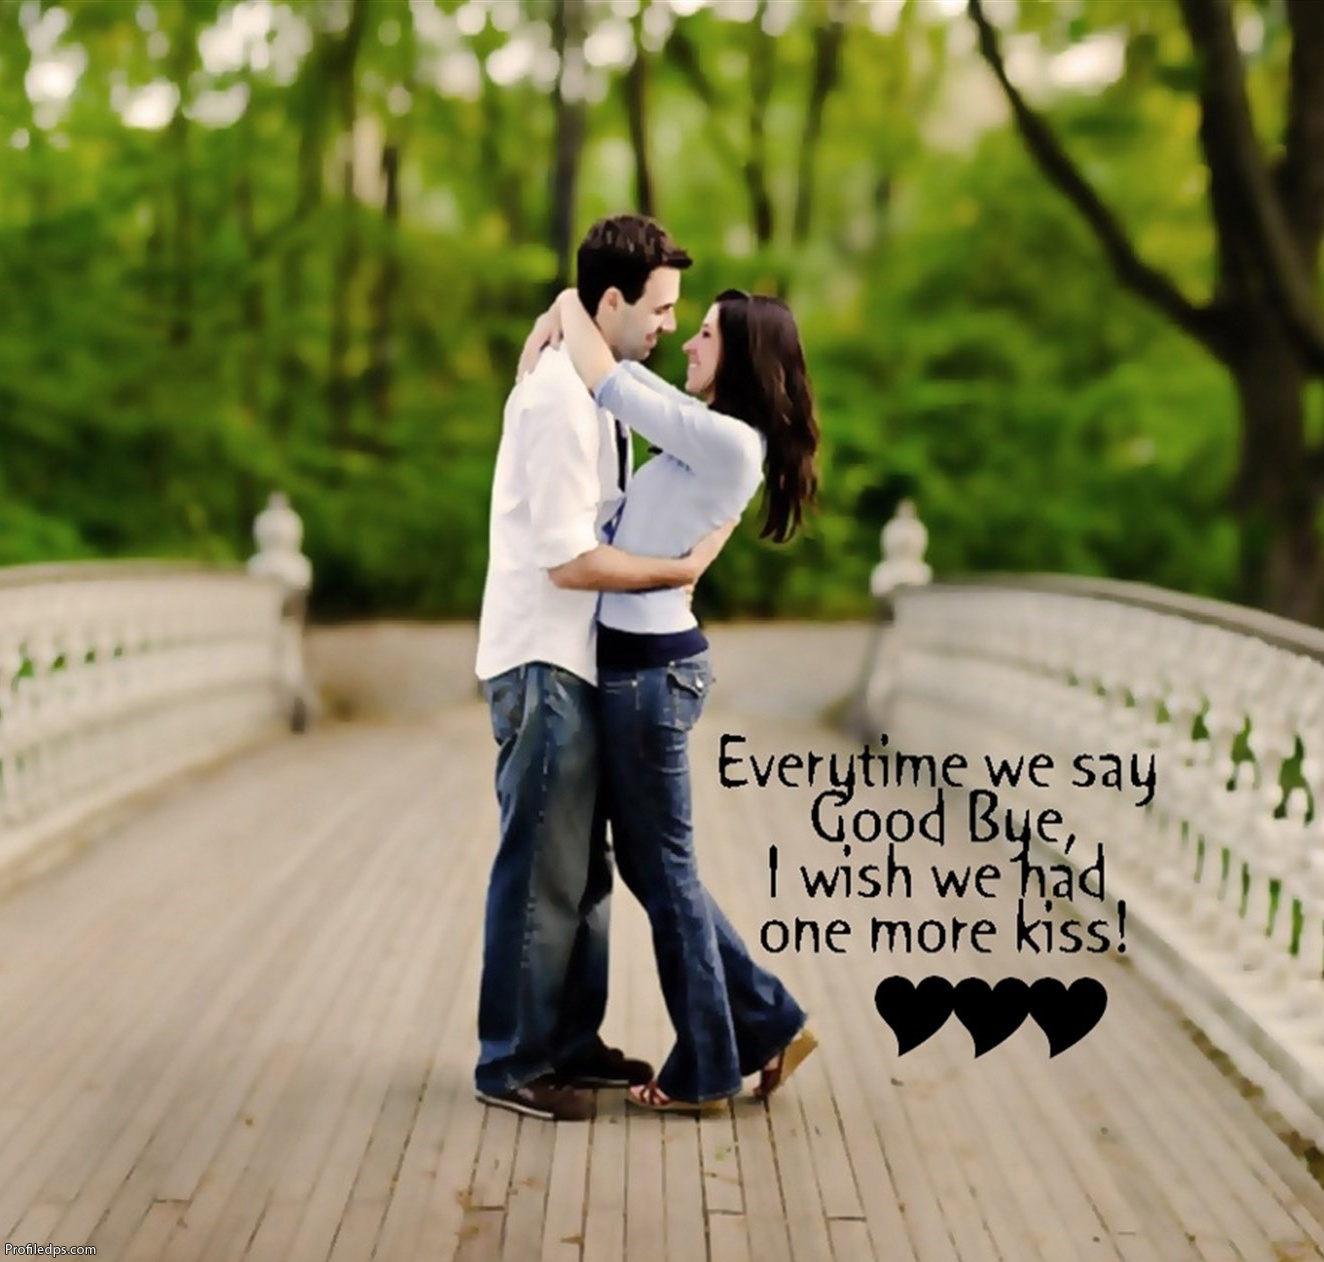 Free Love Couple Wallpapers For Facebook Profile Picture